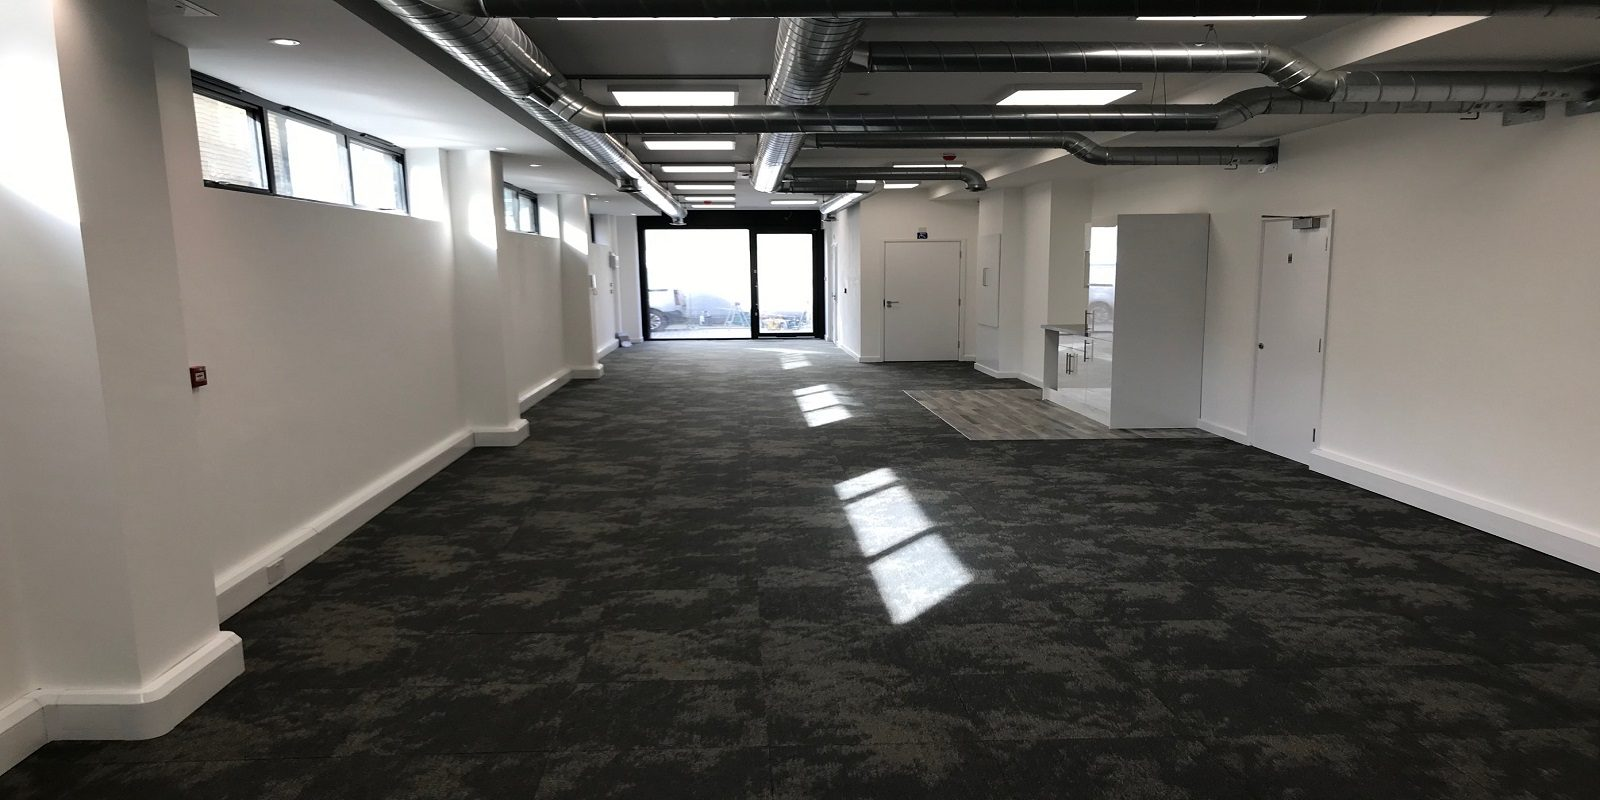 NEWLY BUILT FULLLY FITTED GROUND FLOOR B1 OFFICES – TO BE LET